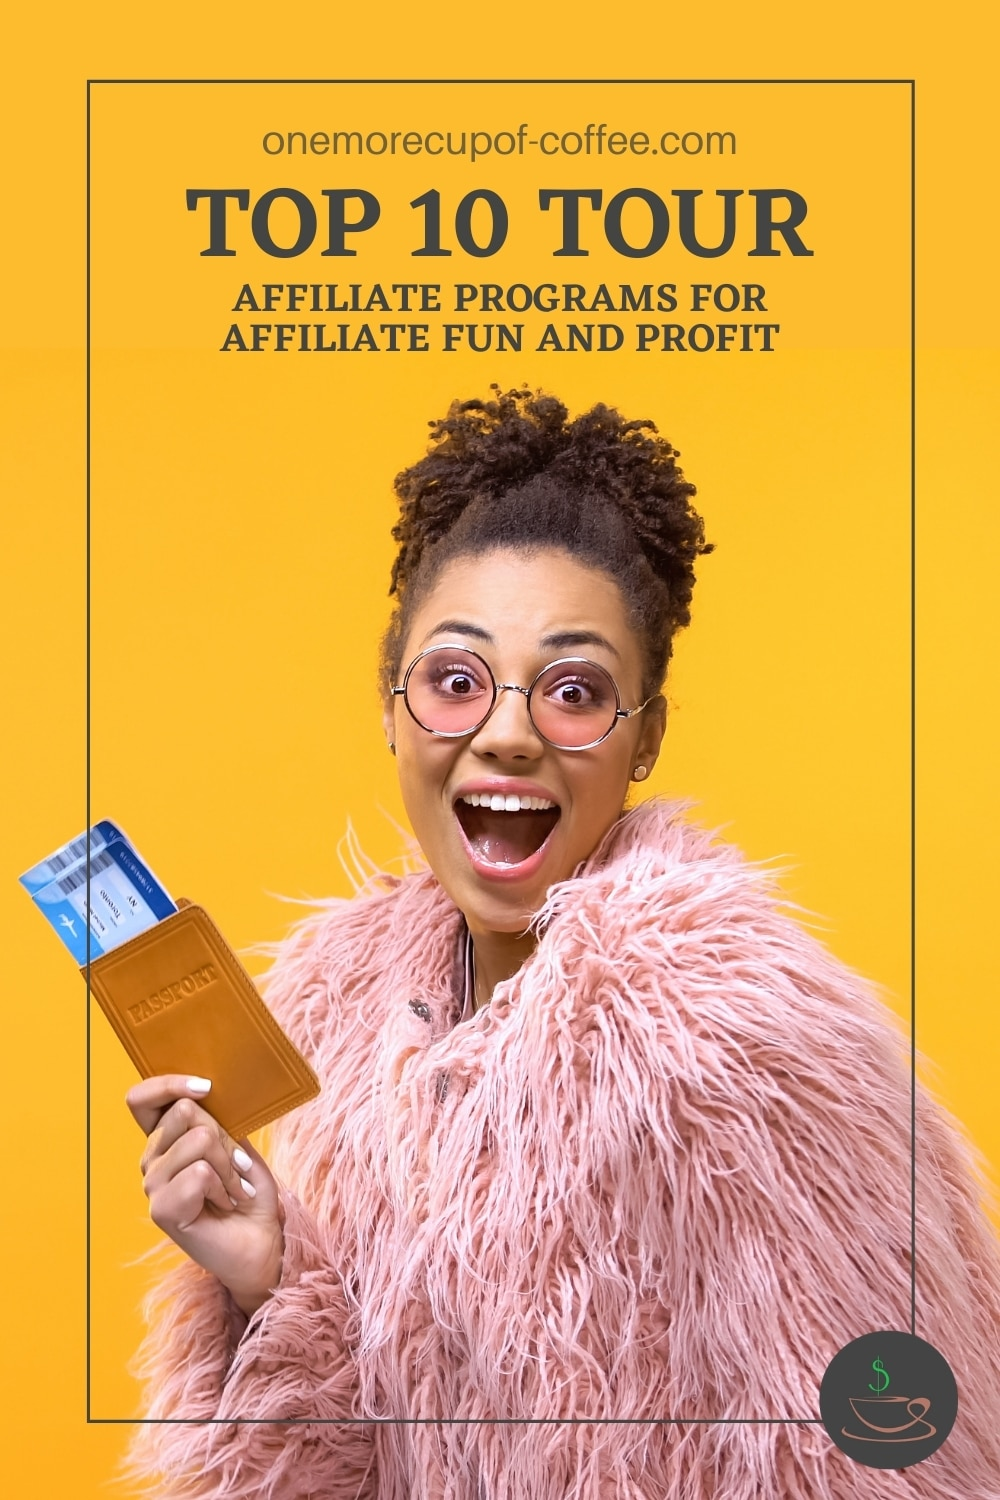 """happy woman in a bun holding a passport against a yellow background, with text overlay """"Top 10 Tour Affiliate Programs For Affiliate Fun And Profit"""""""